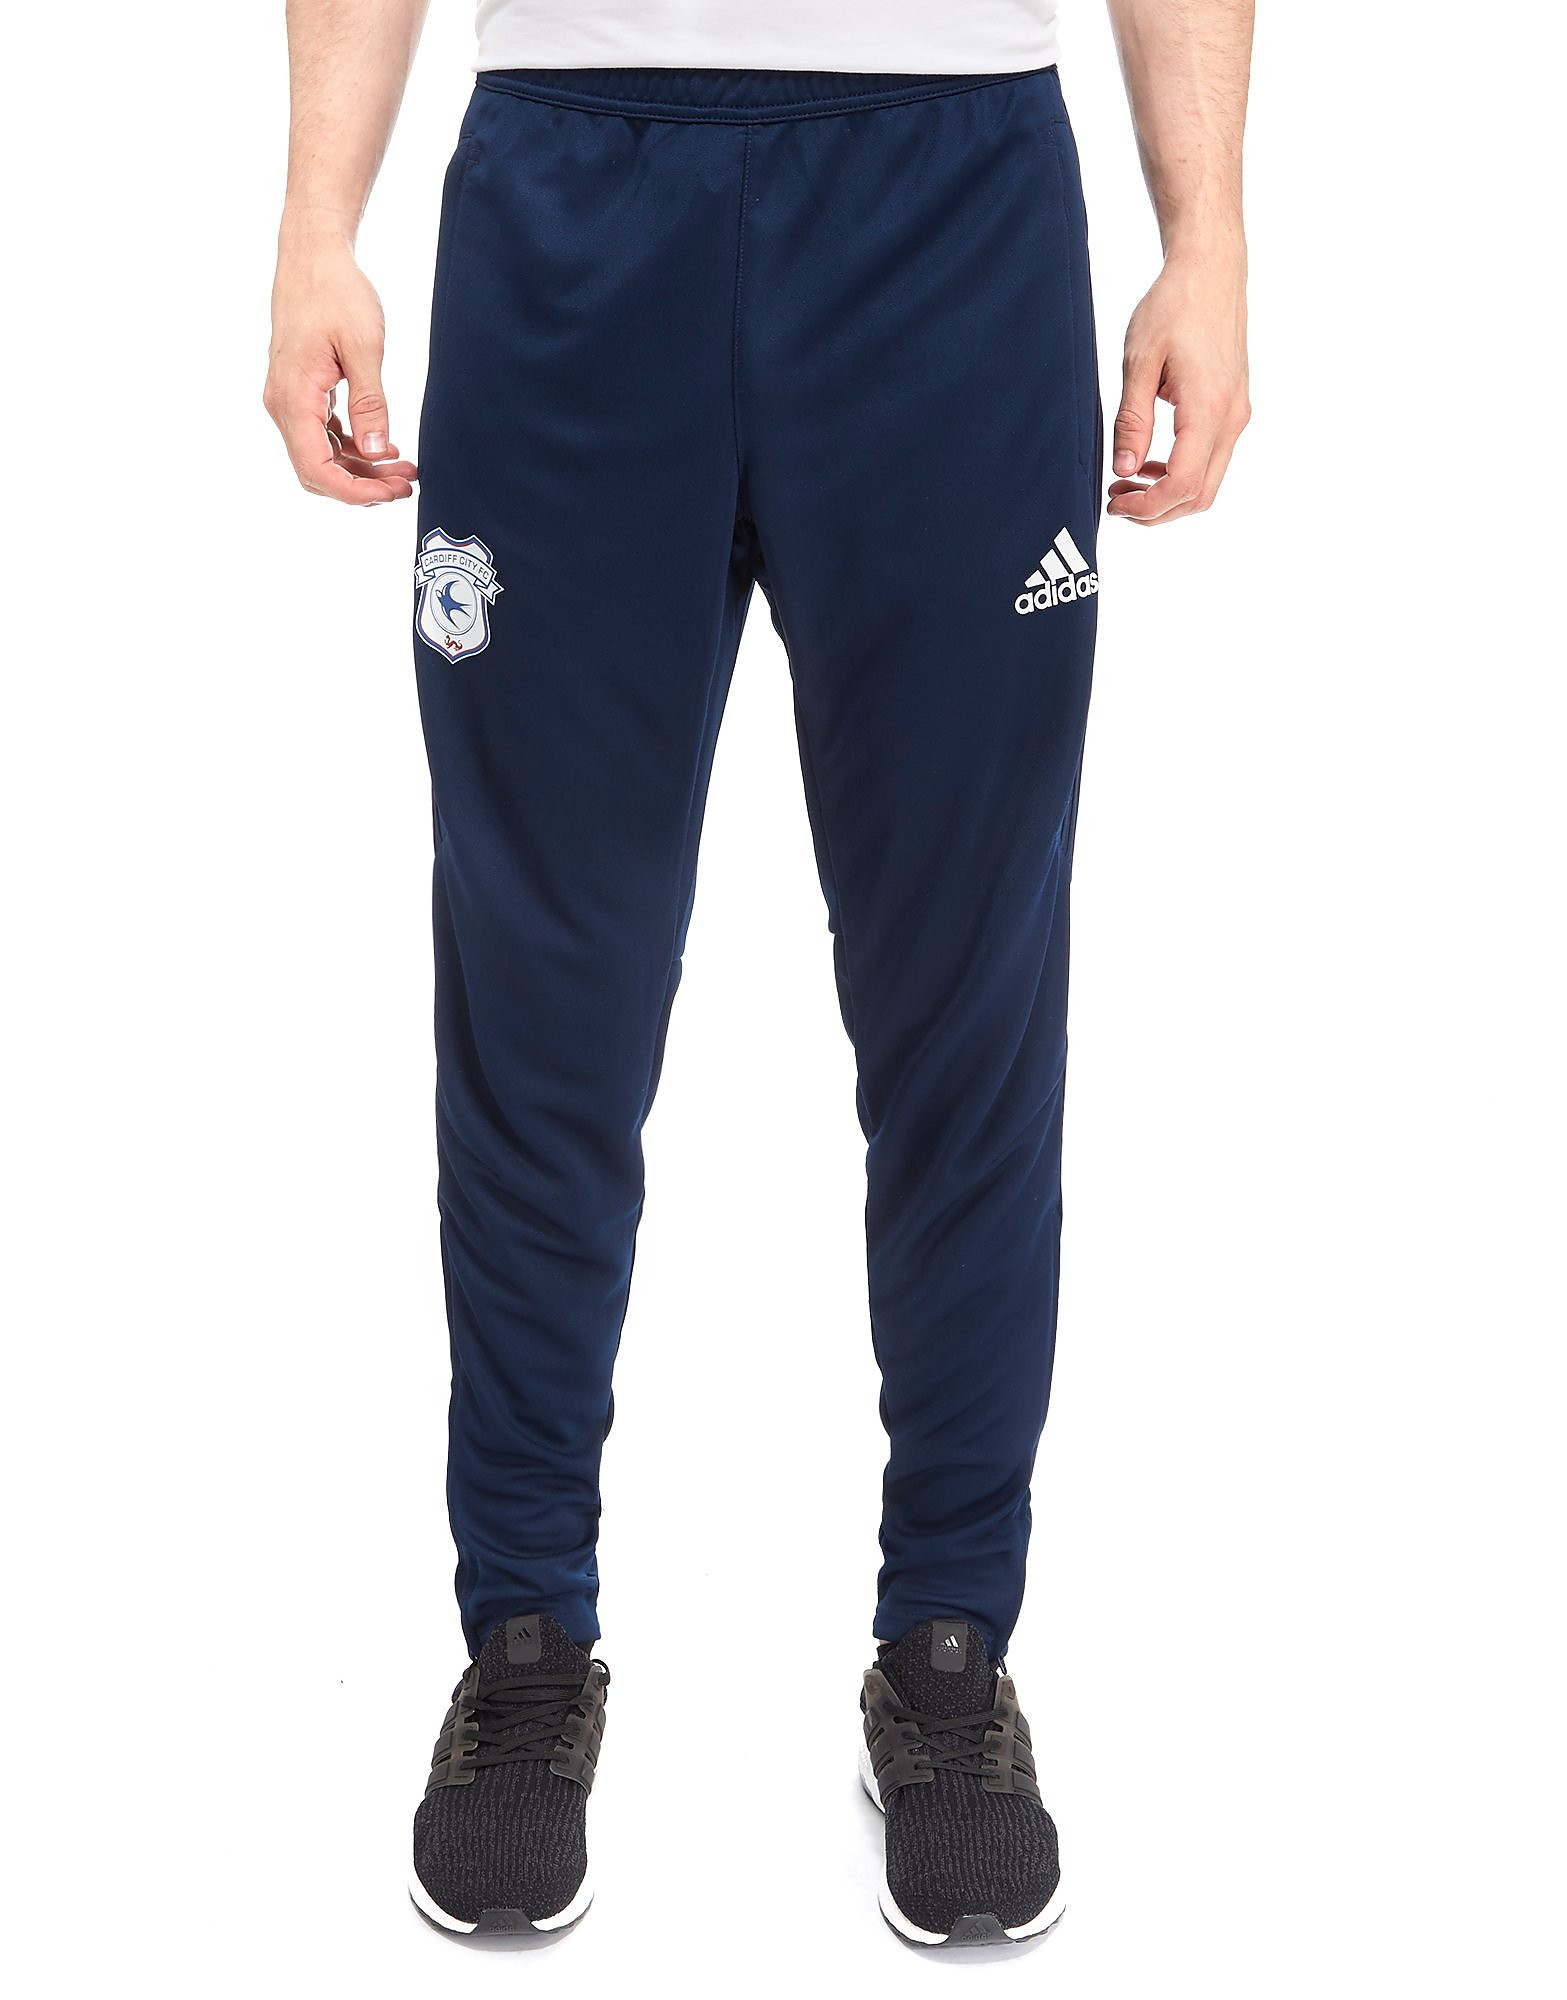 adidas Cardiff City 2017/18 Training Pants